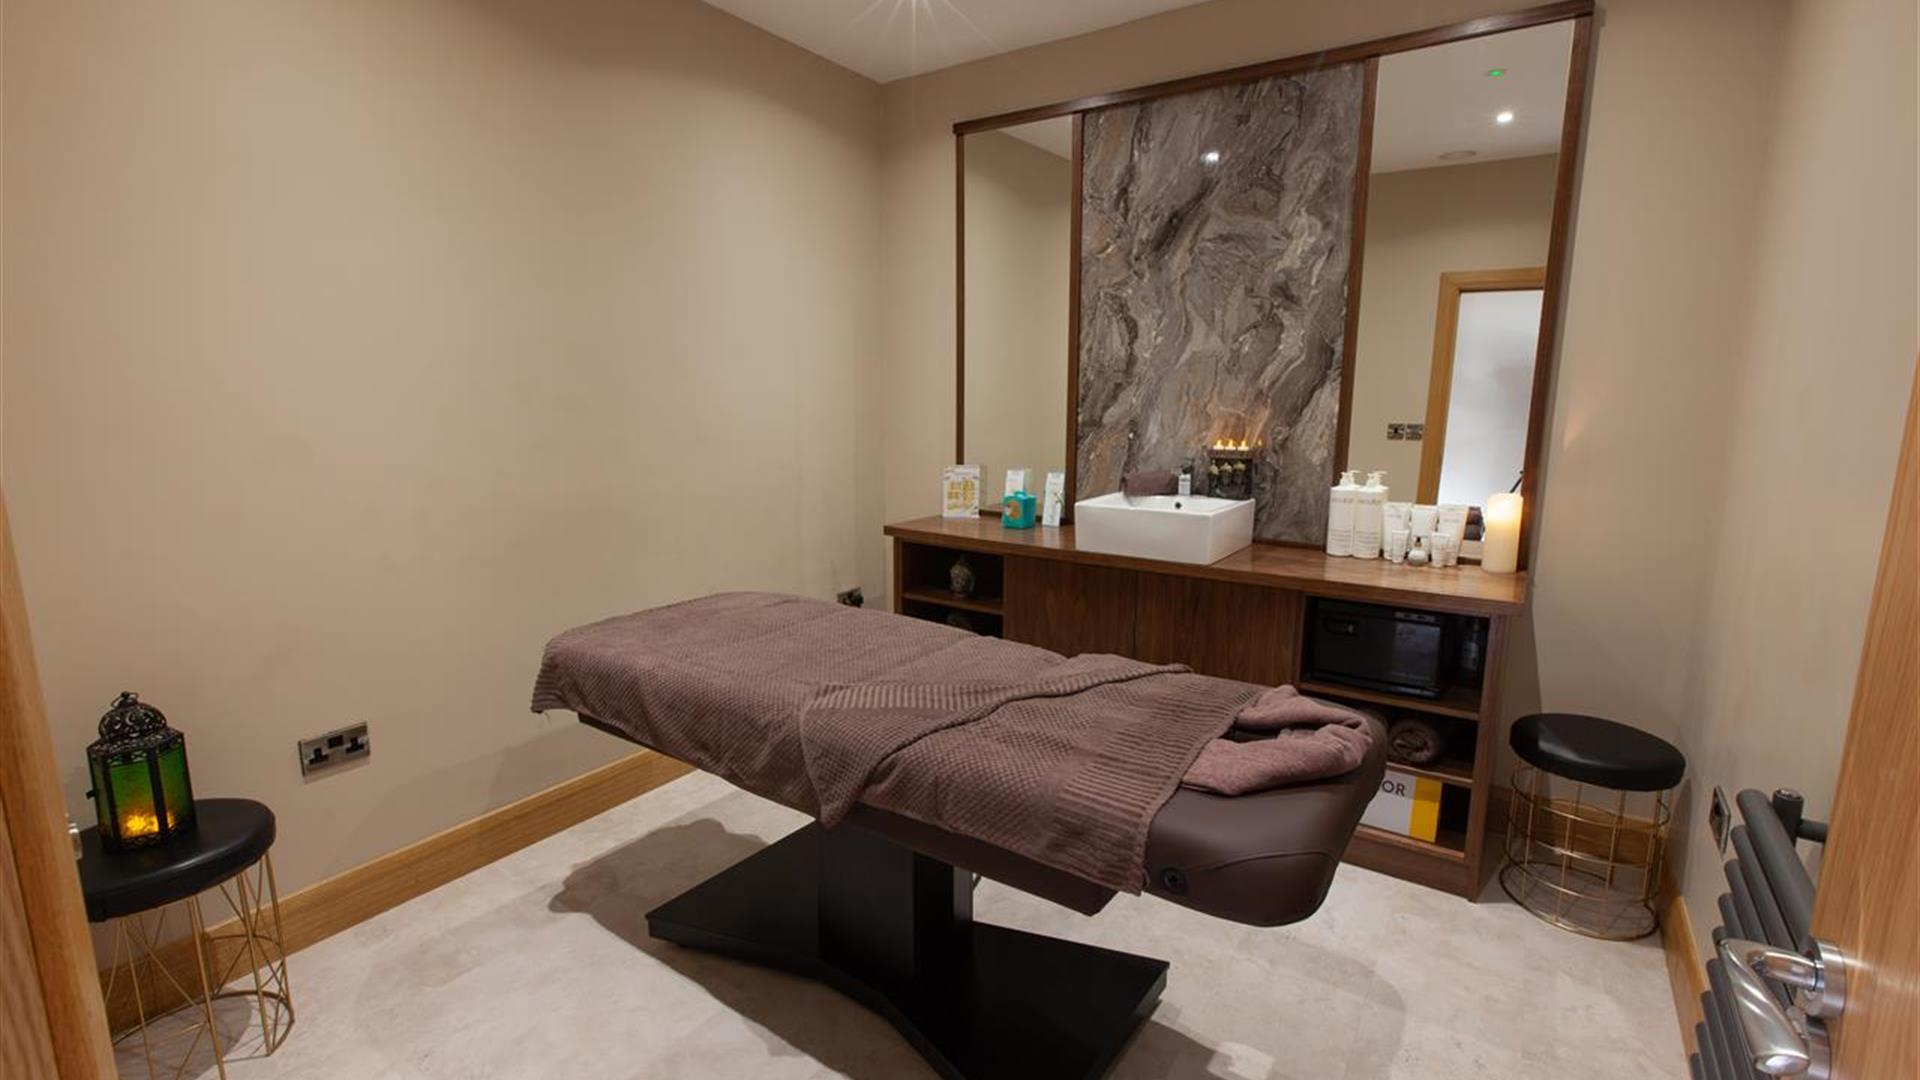 The treatment room at the White Horse Hotel.